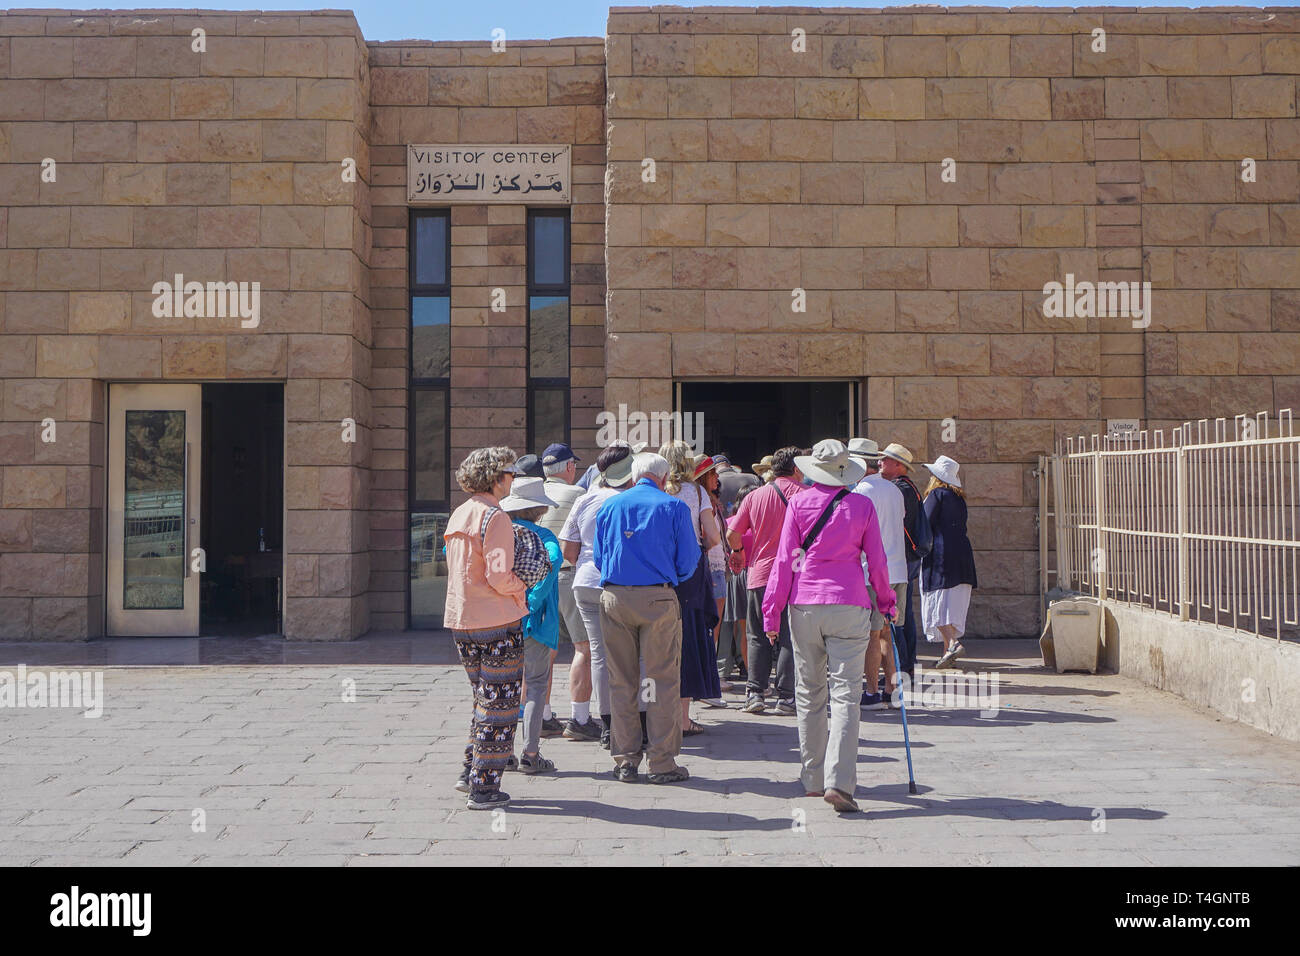 Luxor, Egypt: Tourists enter the Visitor Center at the Valley of the Kings, the New Kingdom burial place on the West Bank of the Nile River. - Stock Image